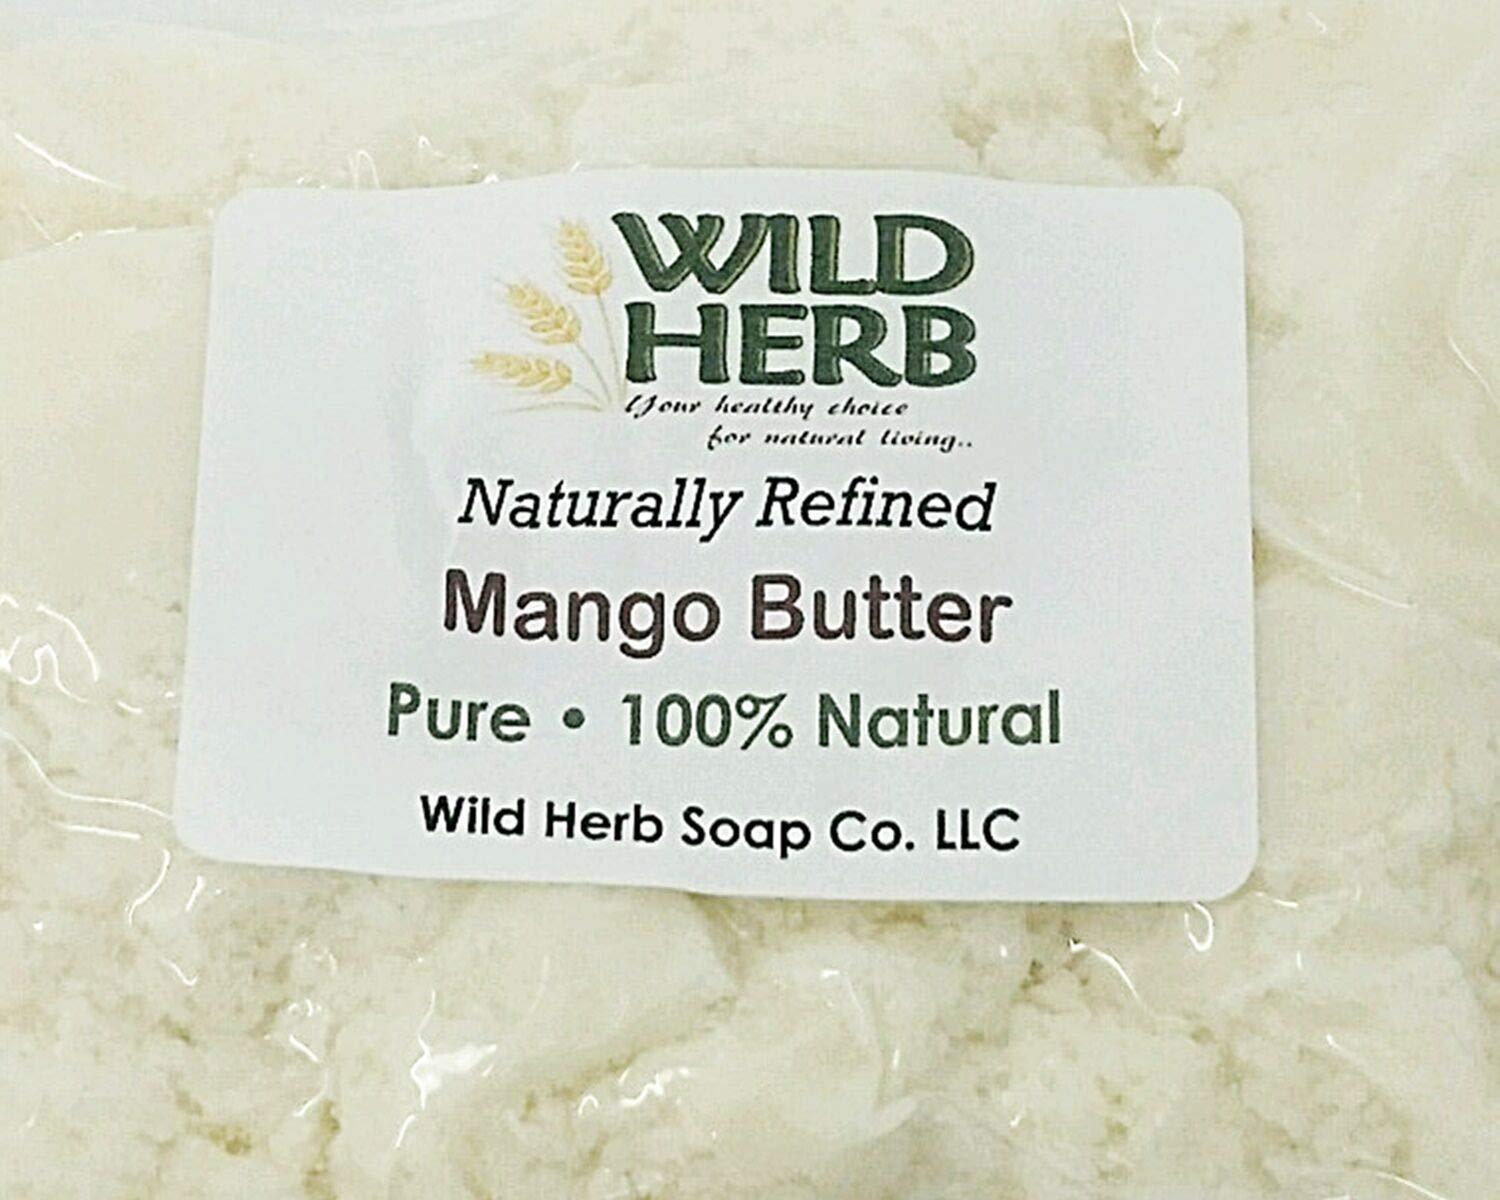 service Mango Butter sourced from a USDA ISO Latest item 9001 Organic and Certified